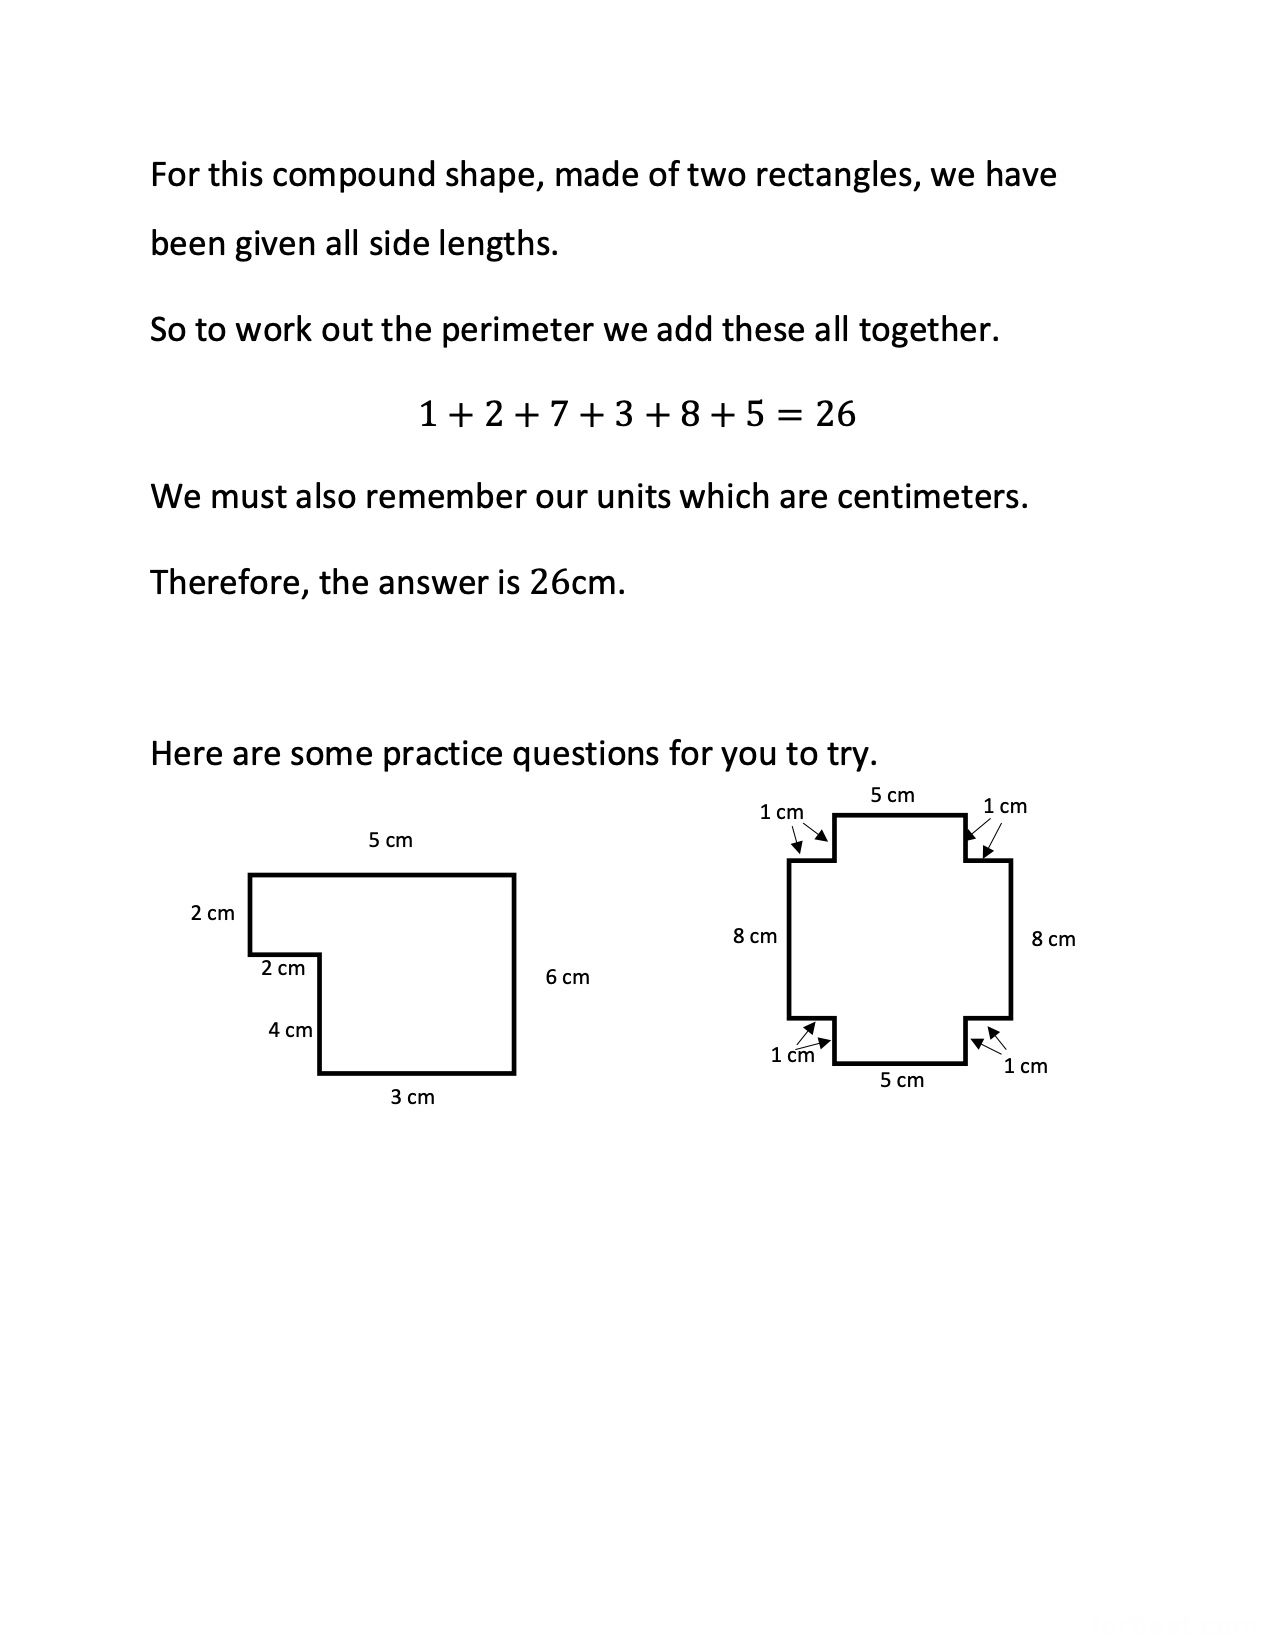 Grade 3 Math The Perimeter Of The Compound Shapes